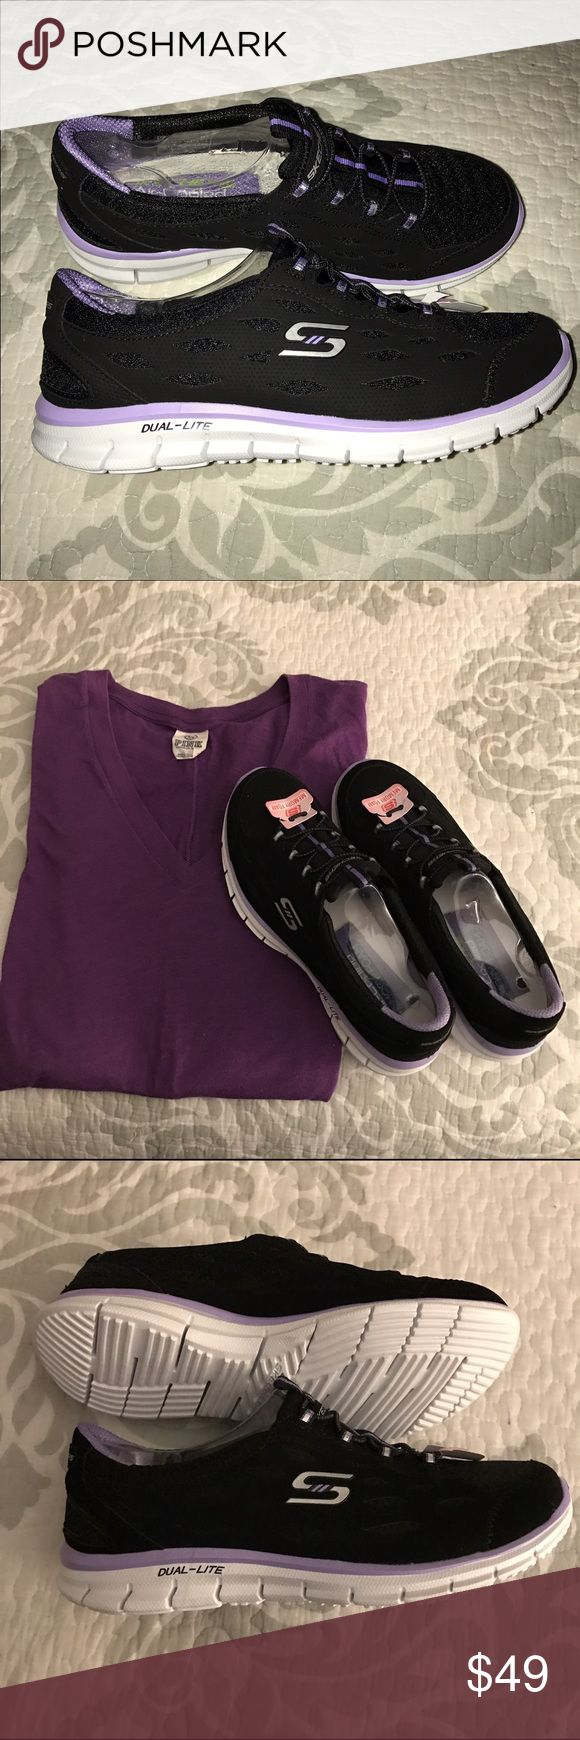 Sketchers Dual-Lite Memory foam sneakers Size-7 👟 NWOB Sketchers Dual-Lite , Memory foam Sneakers in the colors- Black / Purple, sneakers have been tried on 1 x and still have shoe form in side them, from a smoke free home. Skechers Shoes Sneakers